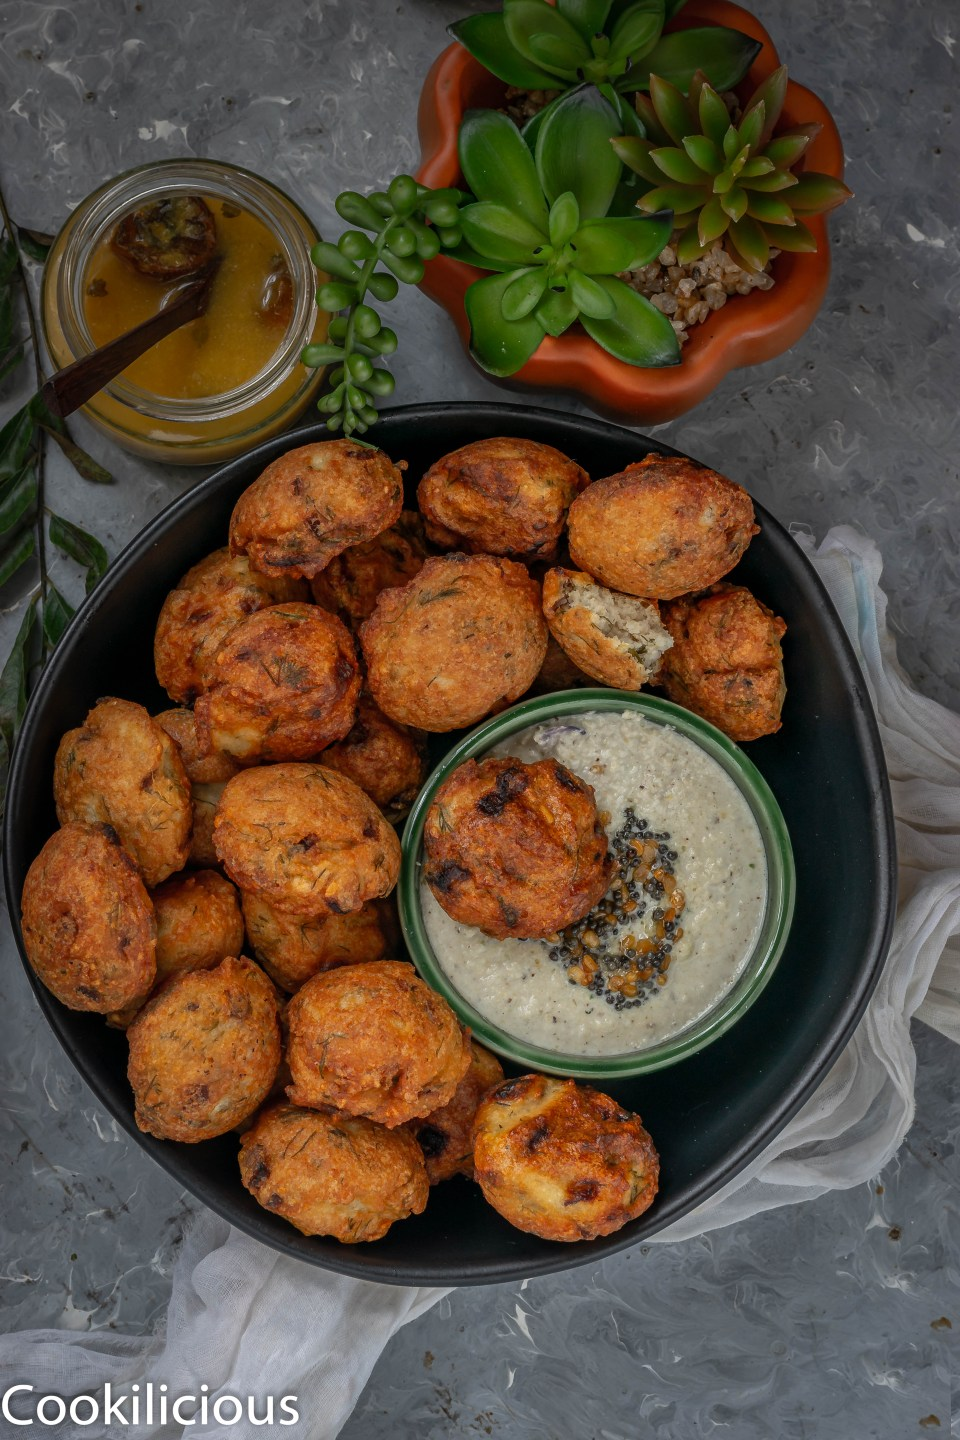 a platter of Dill Flavored Lentil Fritters along with coconut chutney